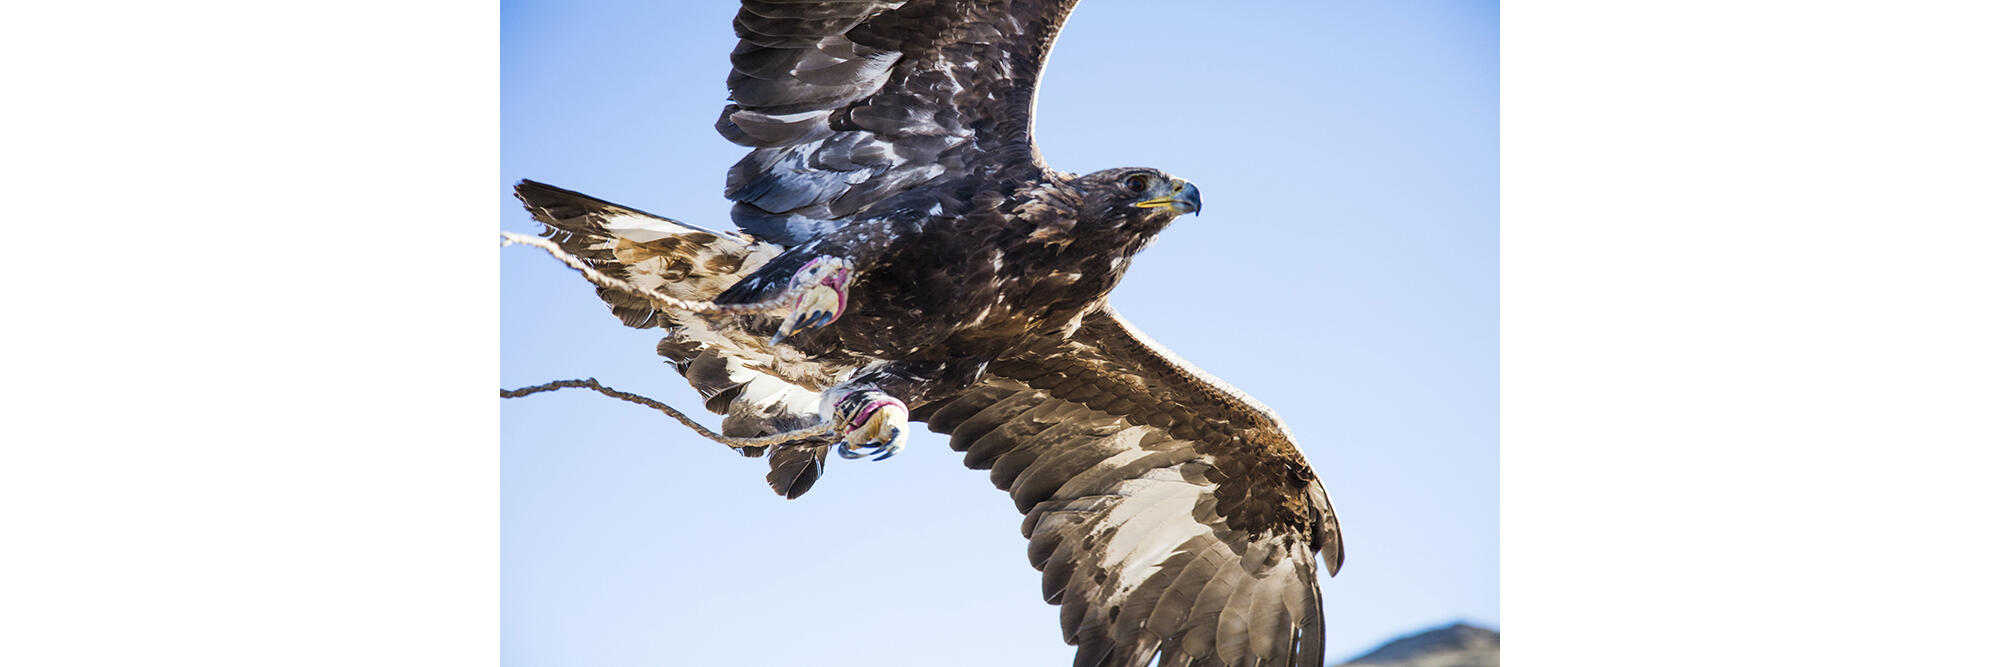 """Leather straps called """"jesses"""" attached to the legs of Cheruch's eagle dangle in flight. When she's sitting on his forearm, he grips the anklet to keep her from taking flight. Cedric Angeles/Intersection Photos"""